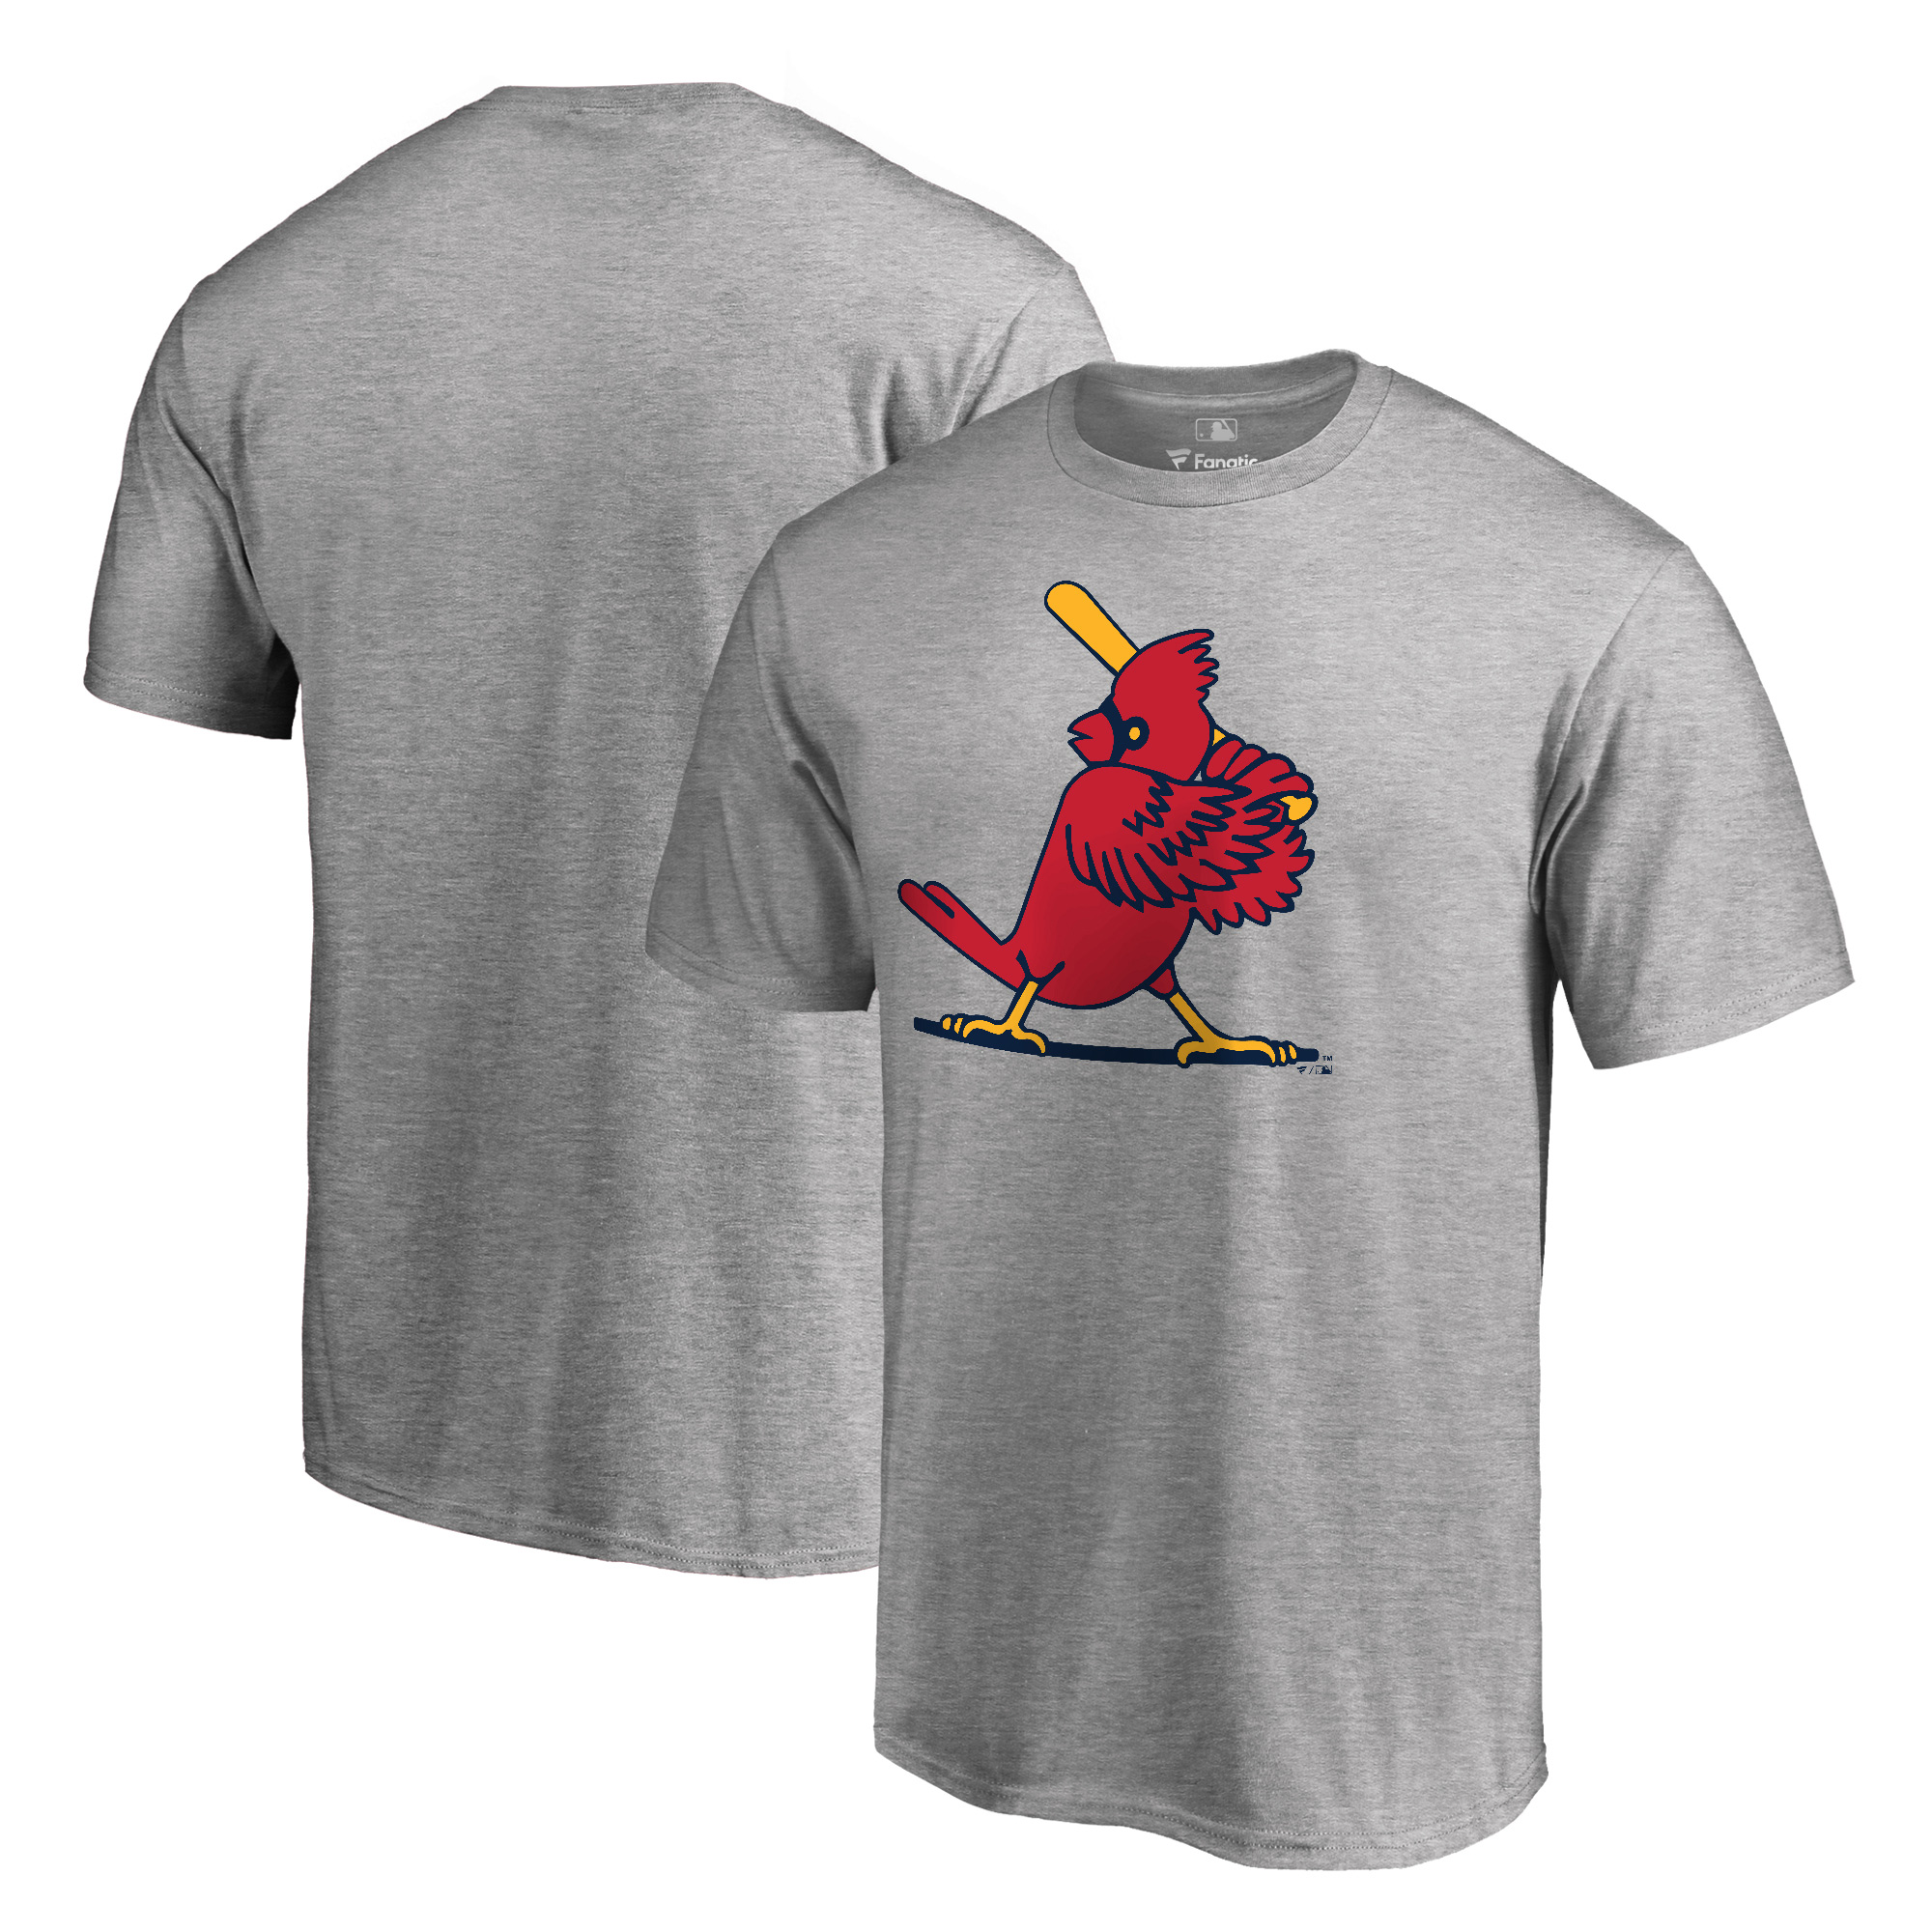 St. Louis Cardinals Fanatics Branded Cooperstown Forbes T-Shirt - Heathered Gray